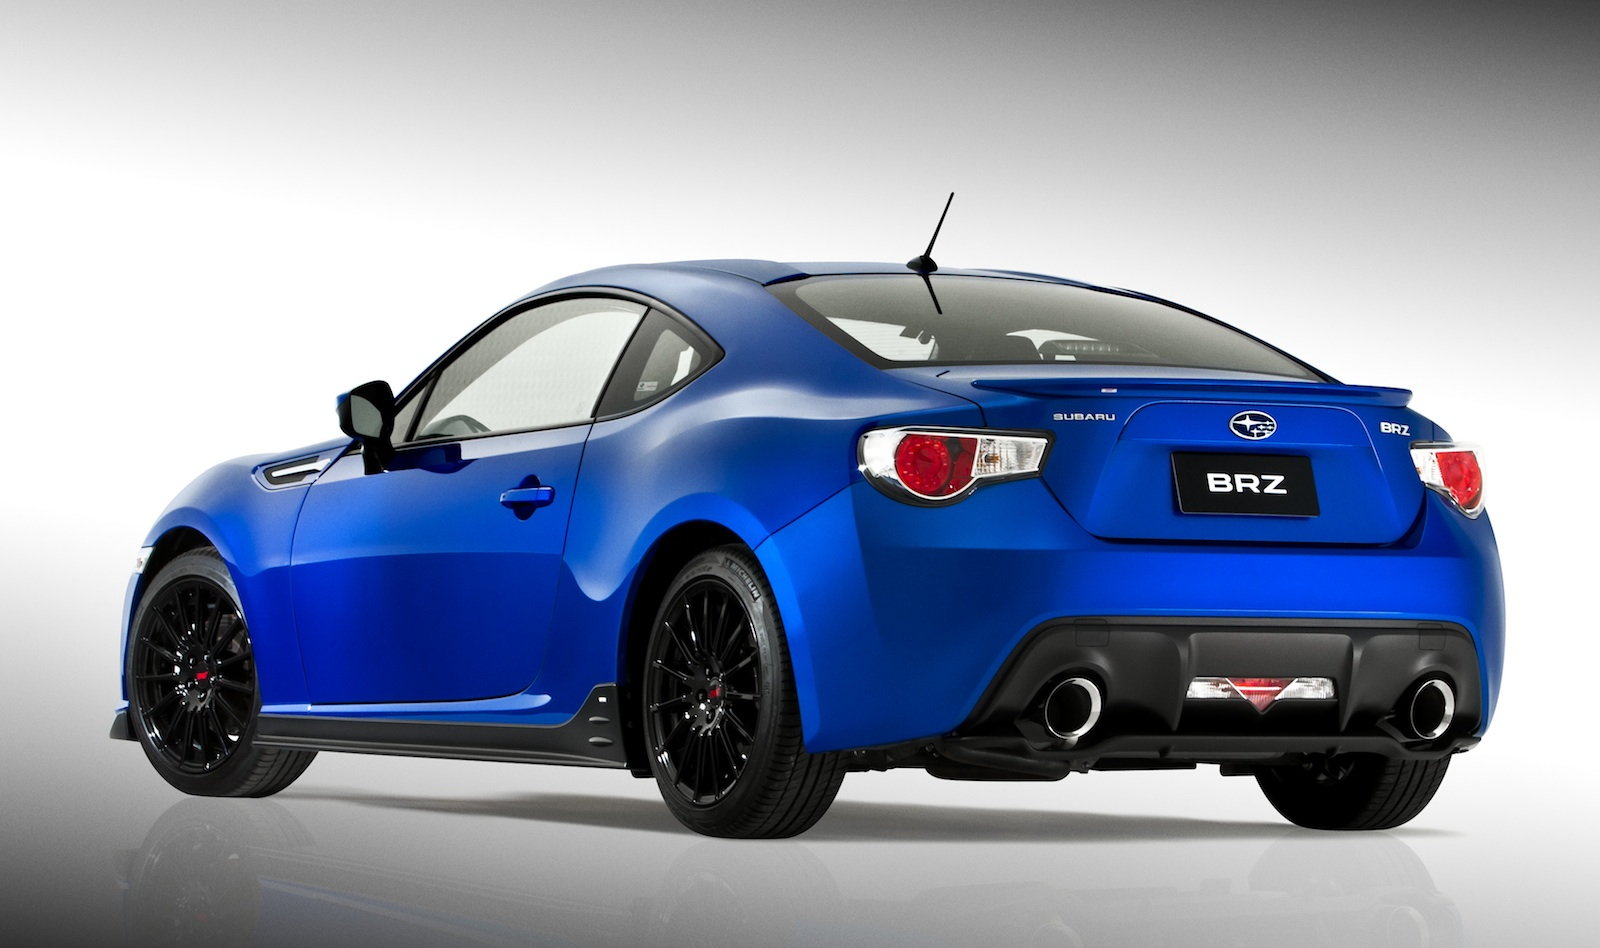 subaru brz sti sports kit concept unveiled to tempt buyers photos 1 of 4. Black Bedroom Furniture Sets. Home Design Ideas